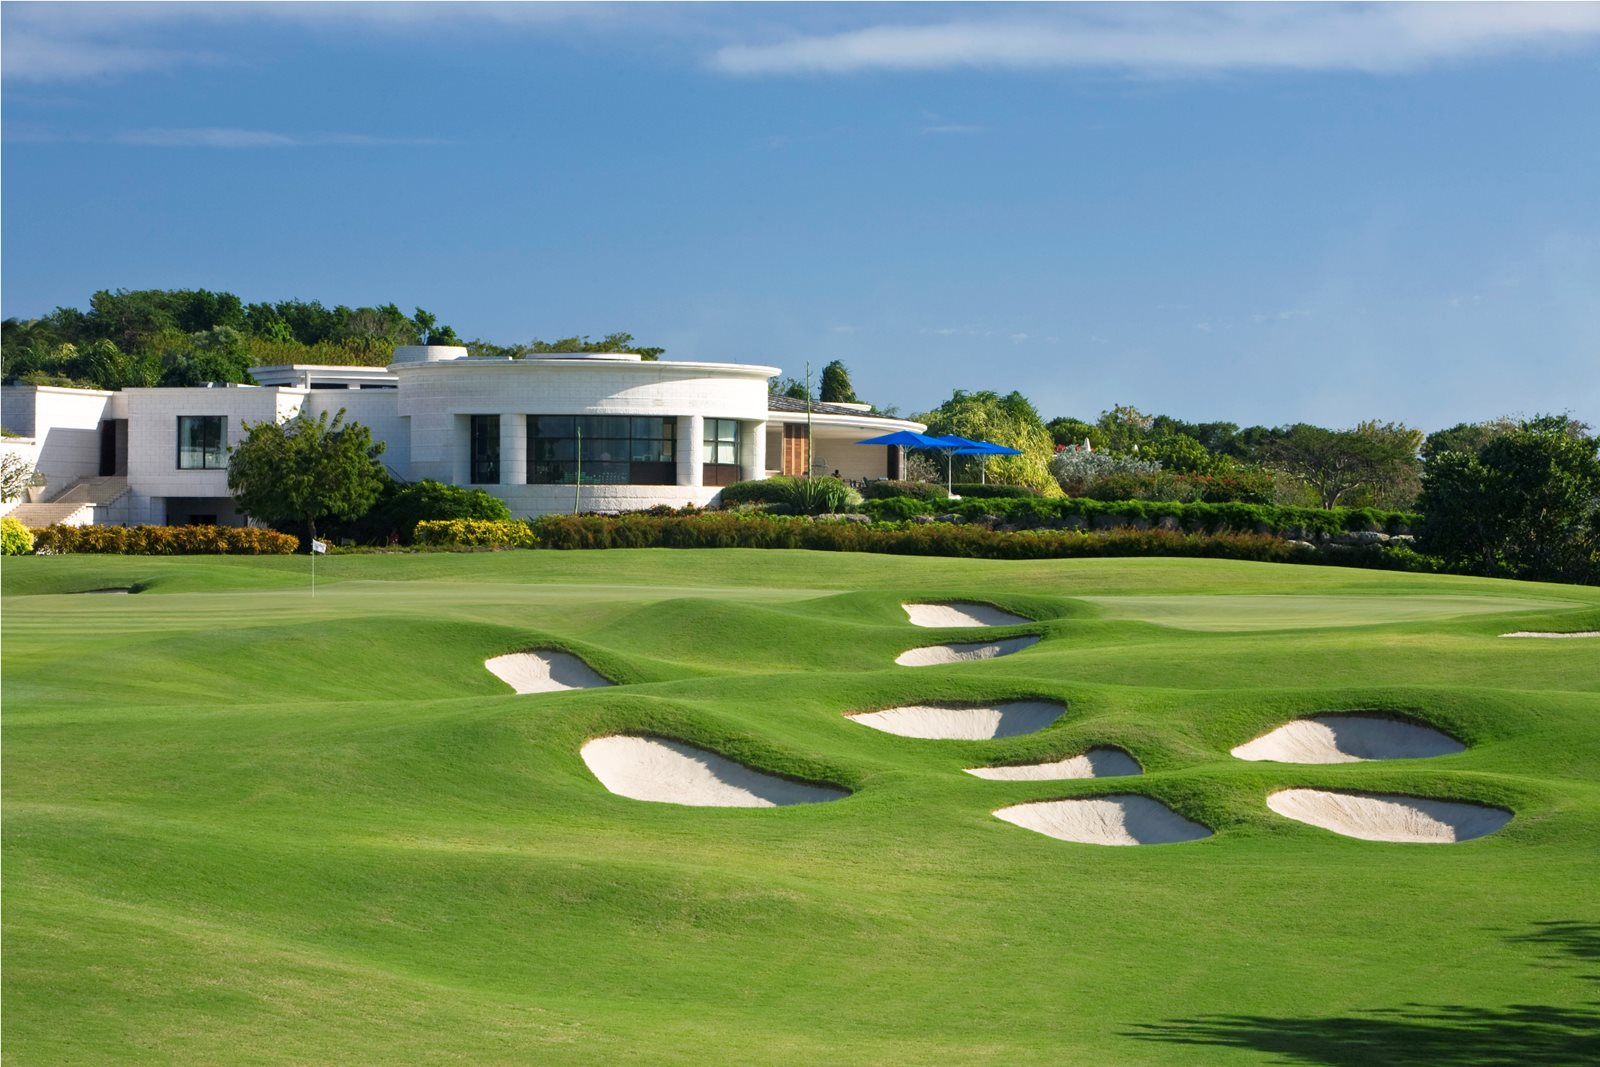 The Country Club Hole 9 Sandy Lane